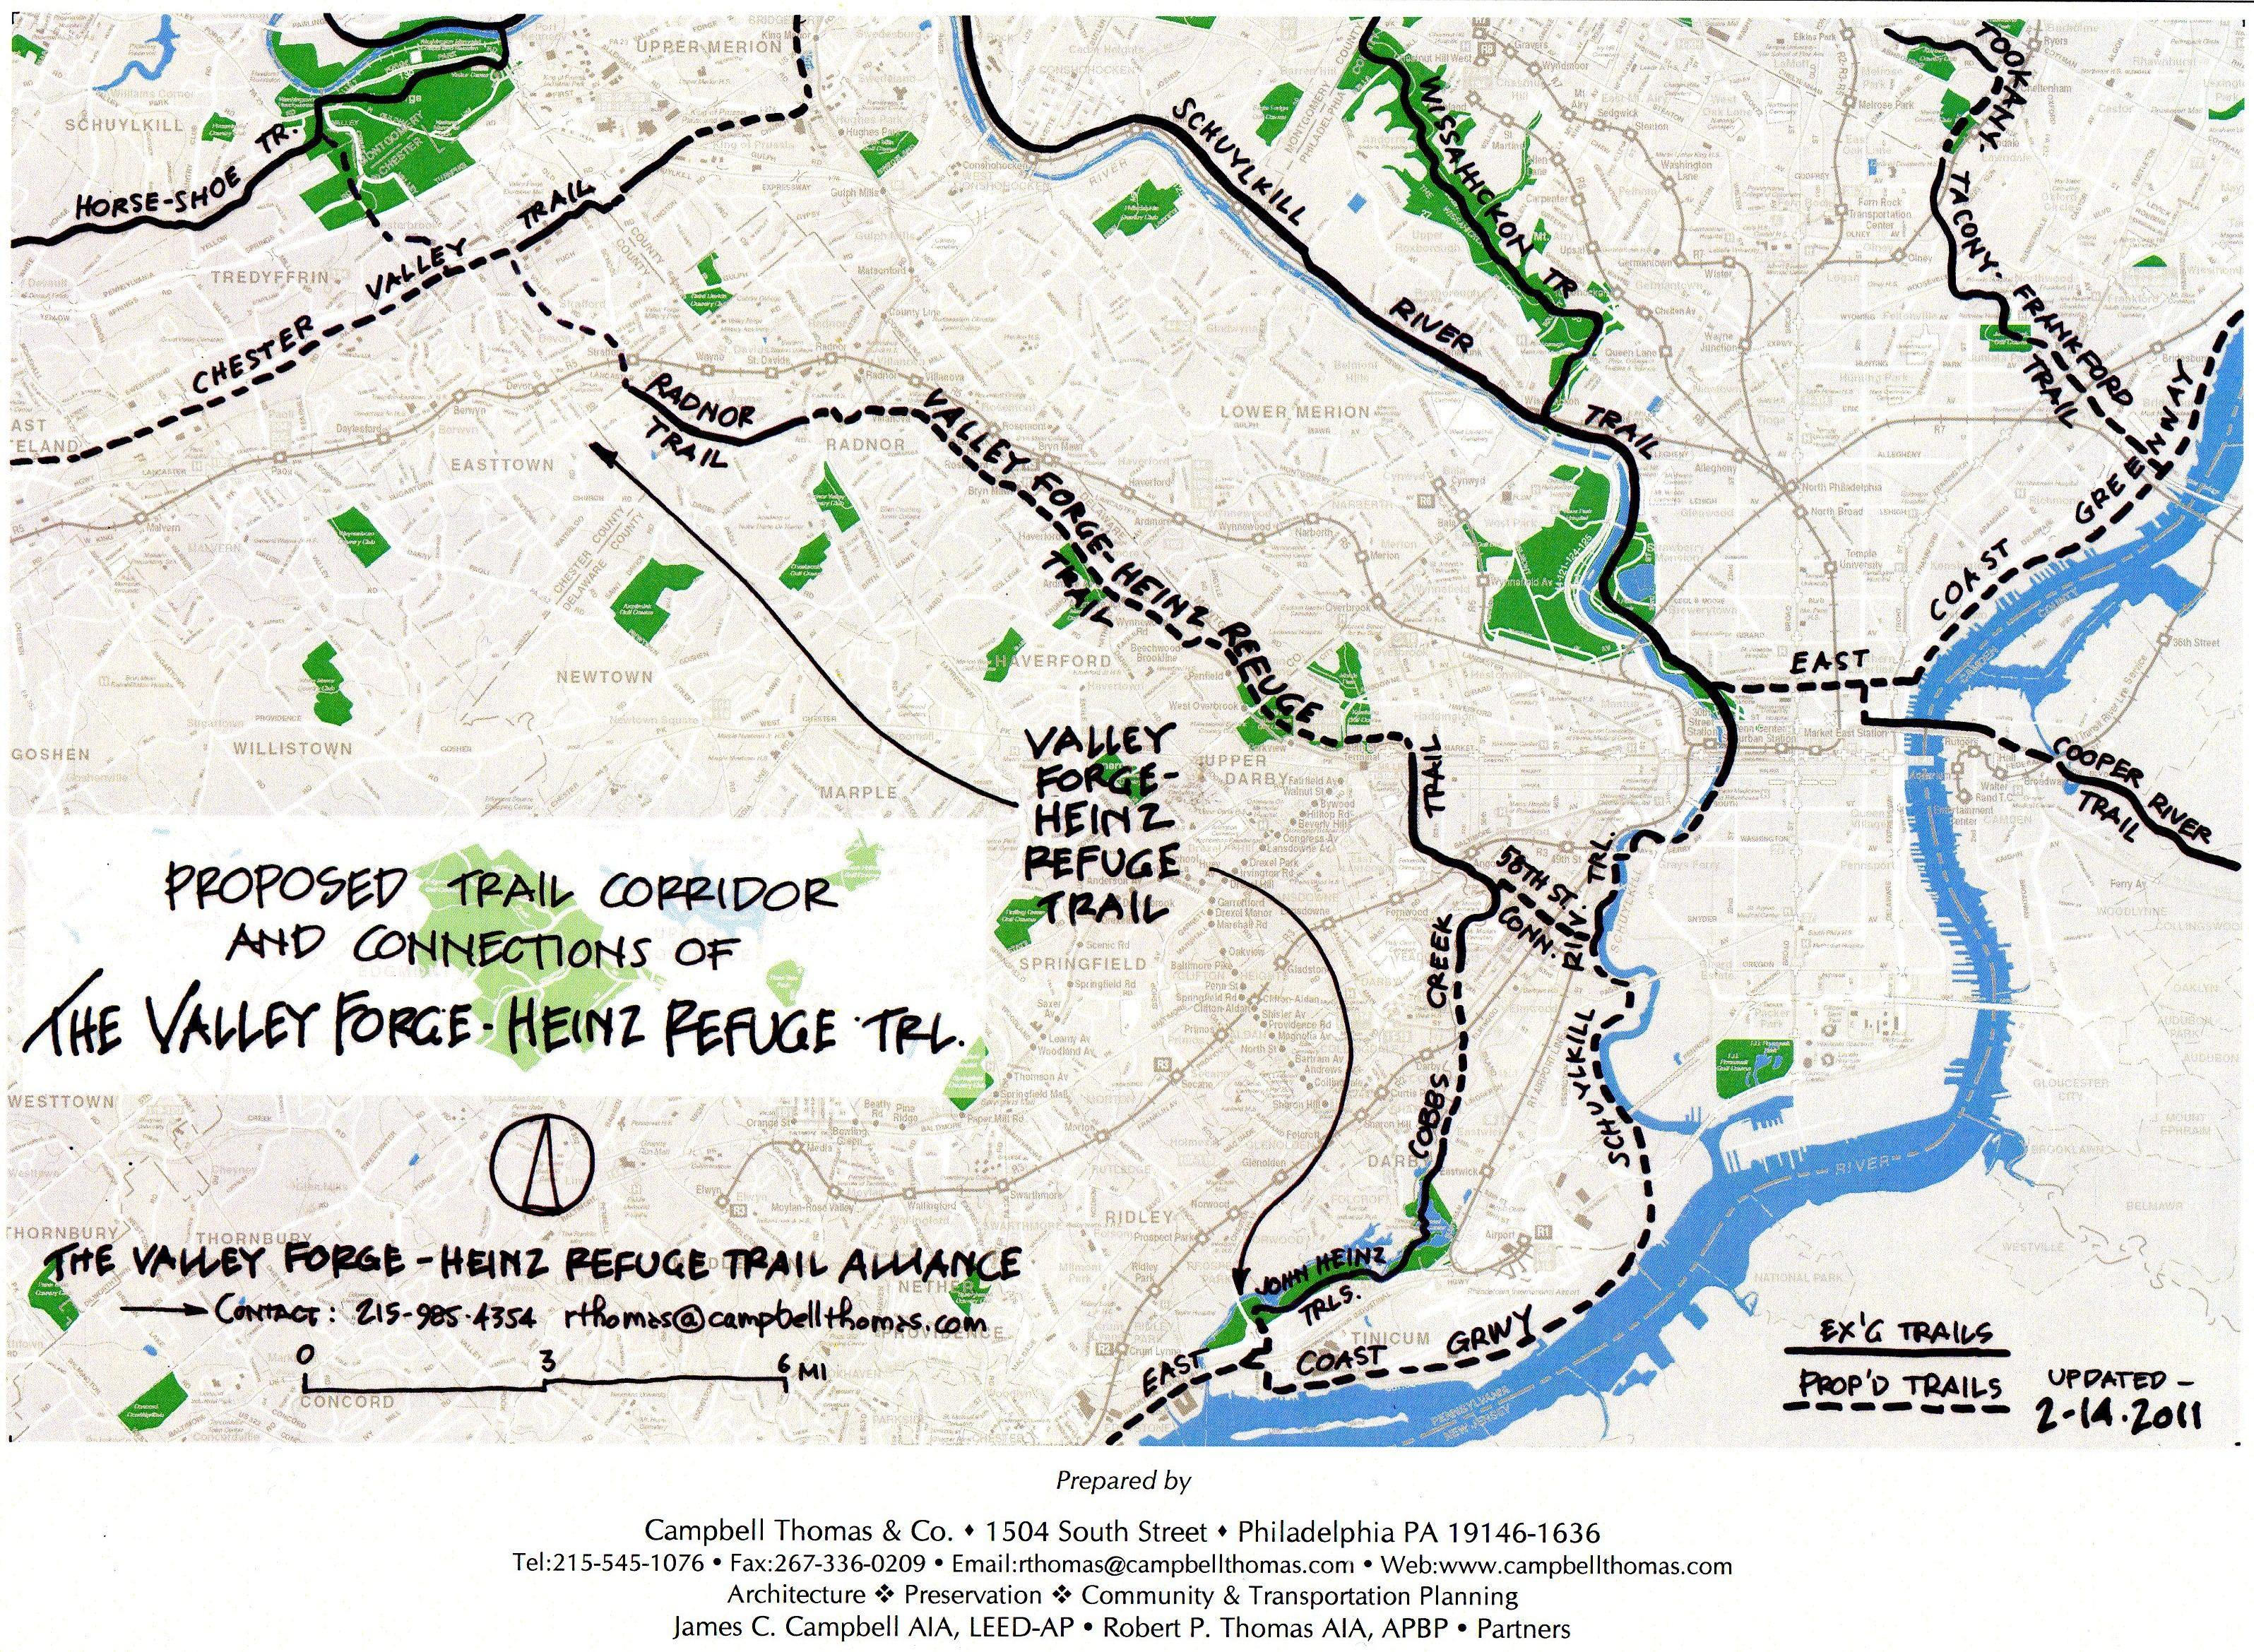 Rt-100-Trail-Map proposed trail